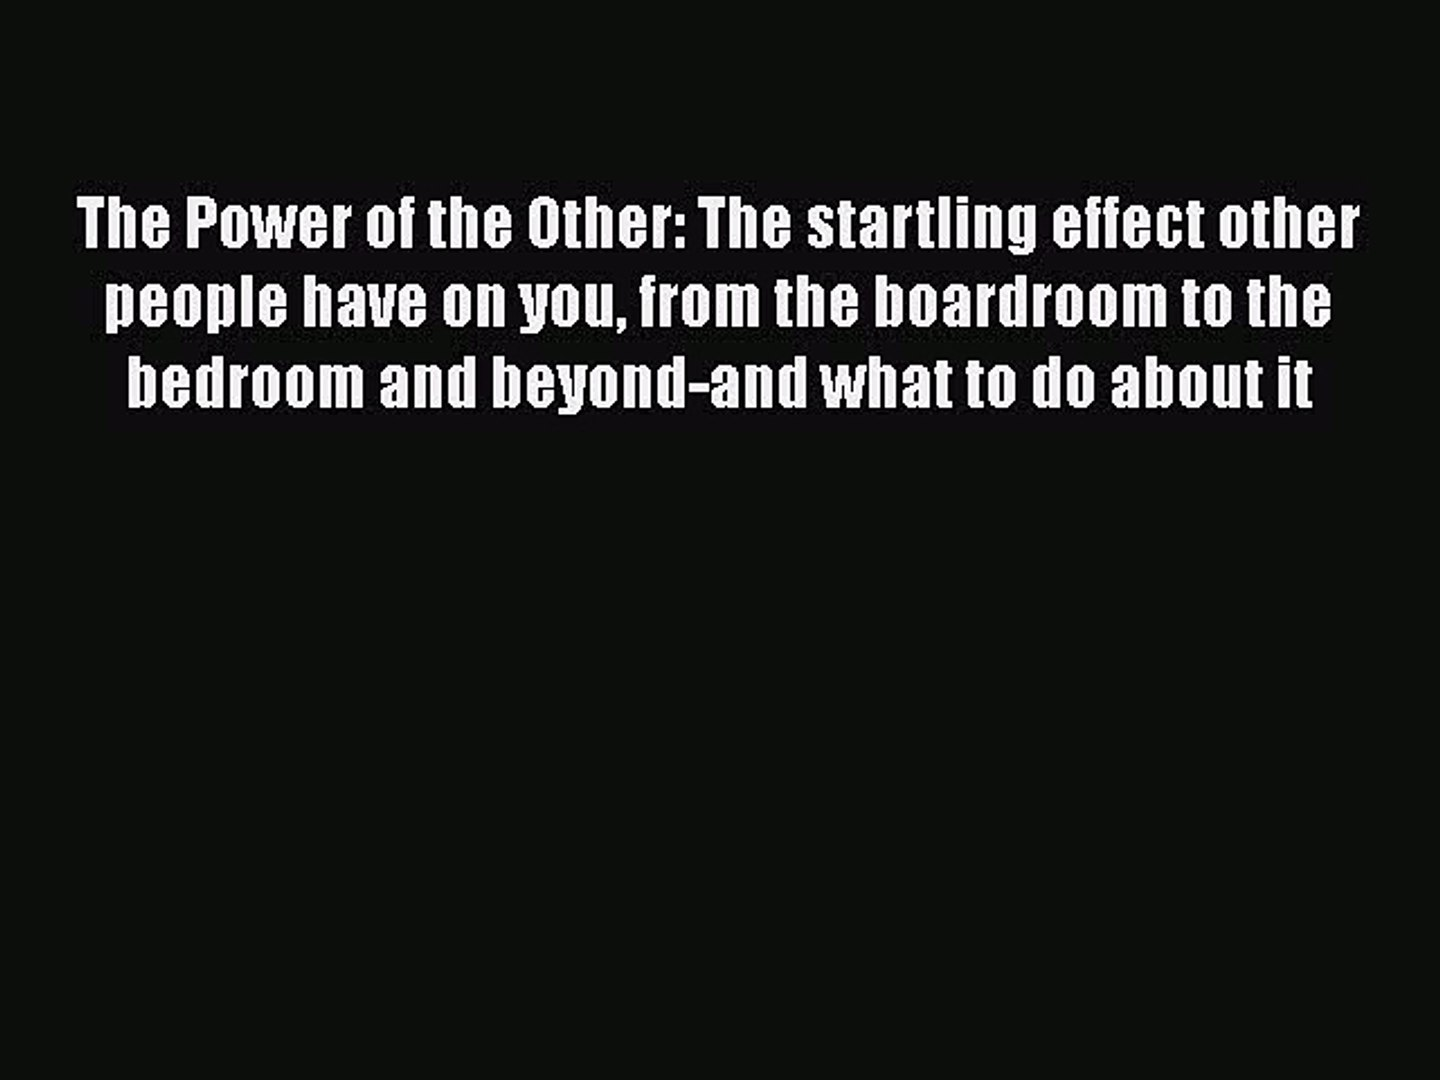 Read The Power of the Other: The startling effect other people have on you from the boardroom